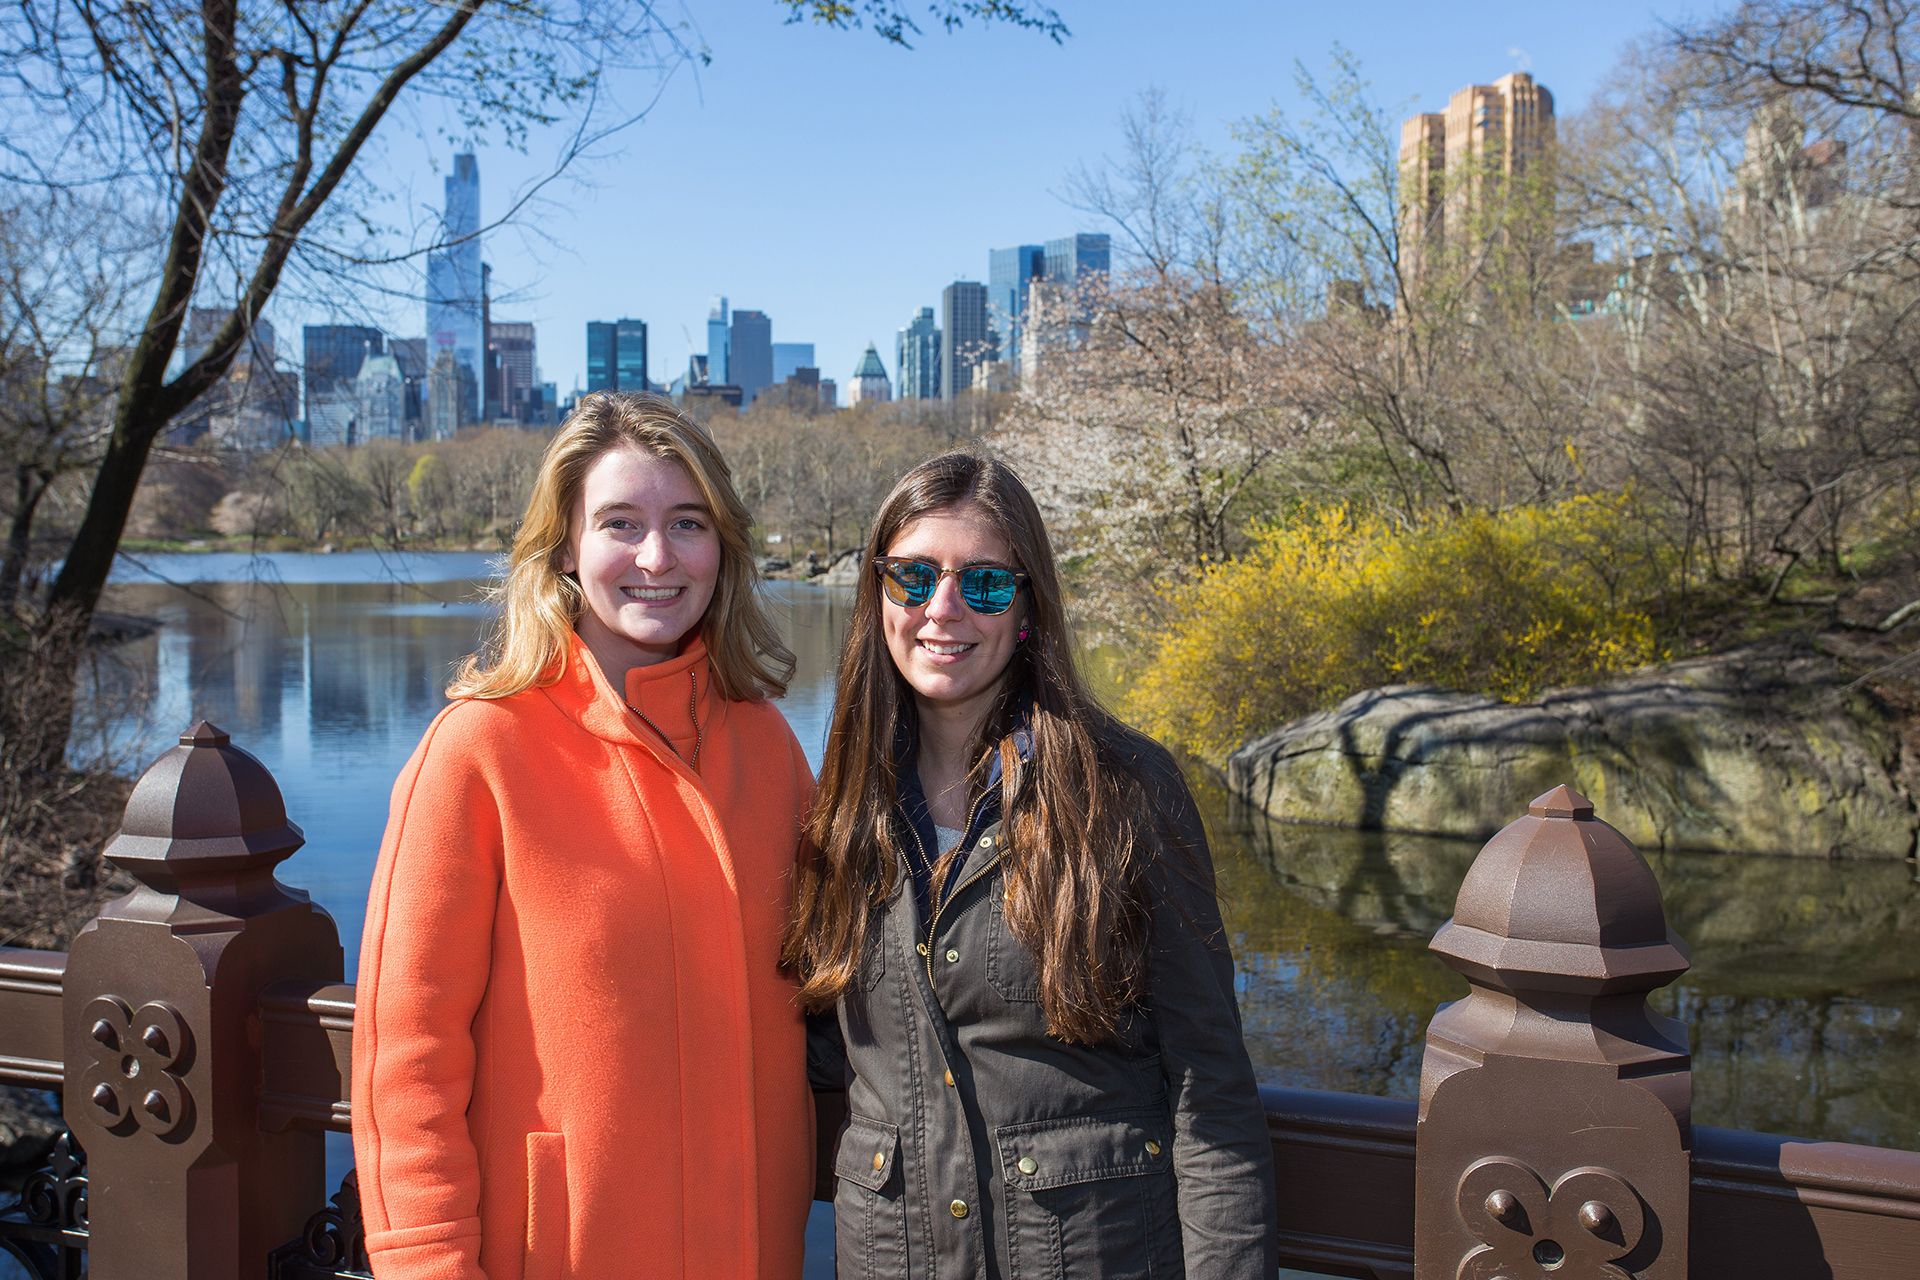 Molli Richards '17 (left) of Massena, NY, interned with the Central Park Conservancy. She is pictured with Lily Barrows '17 of Byfield, MA. (Photo courtesy of Alex Kusak-Smith '12)